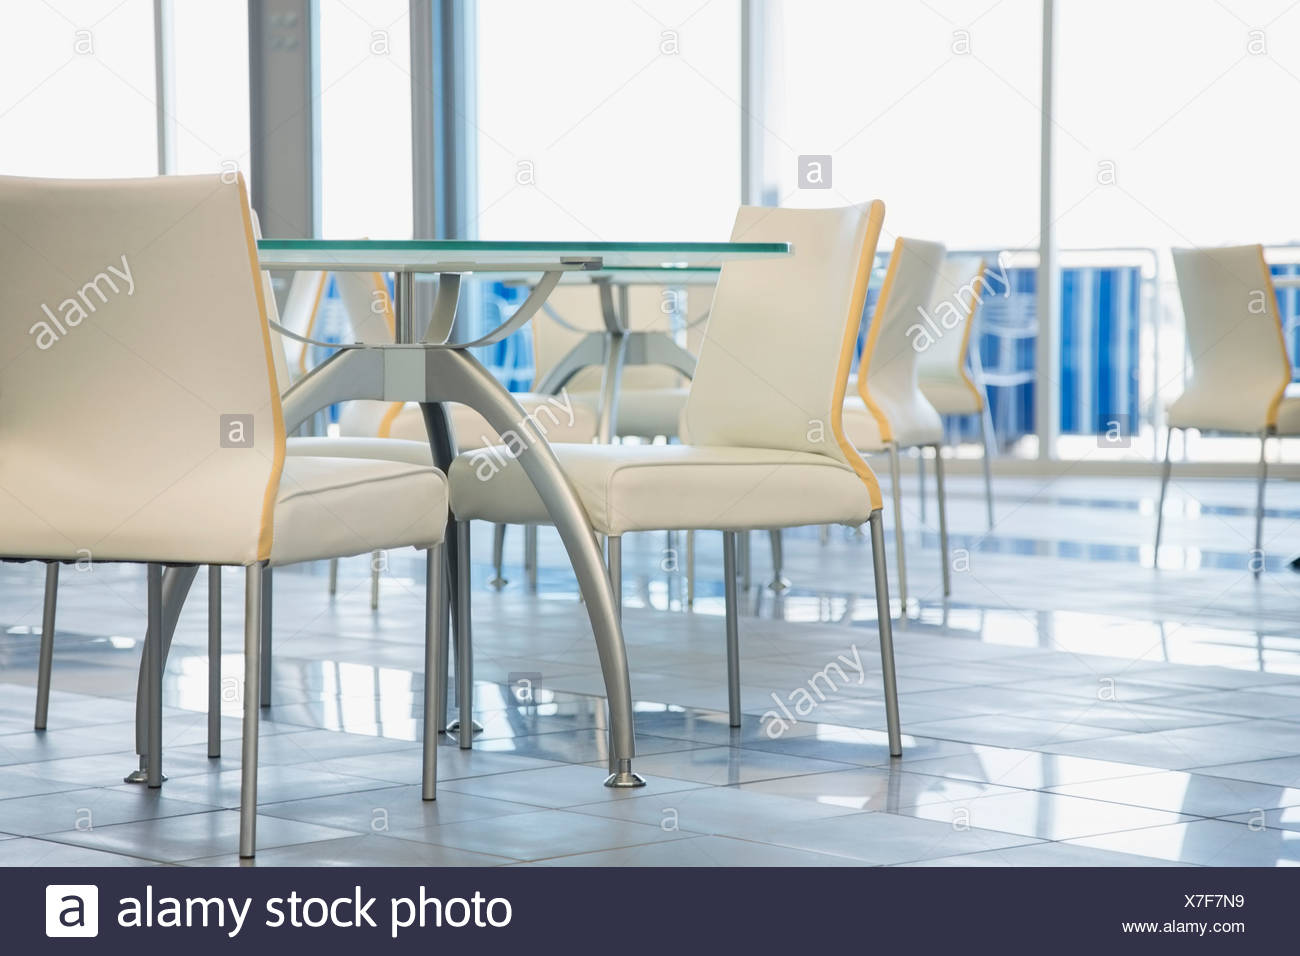 Tables and chairs in office cafeteria - Stock Image